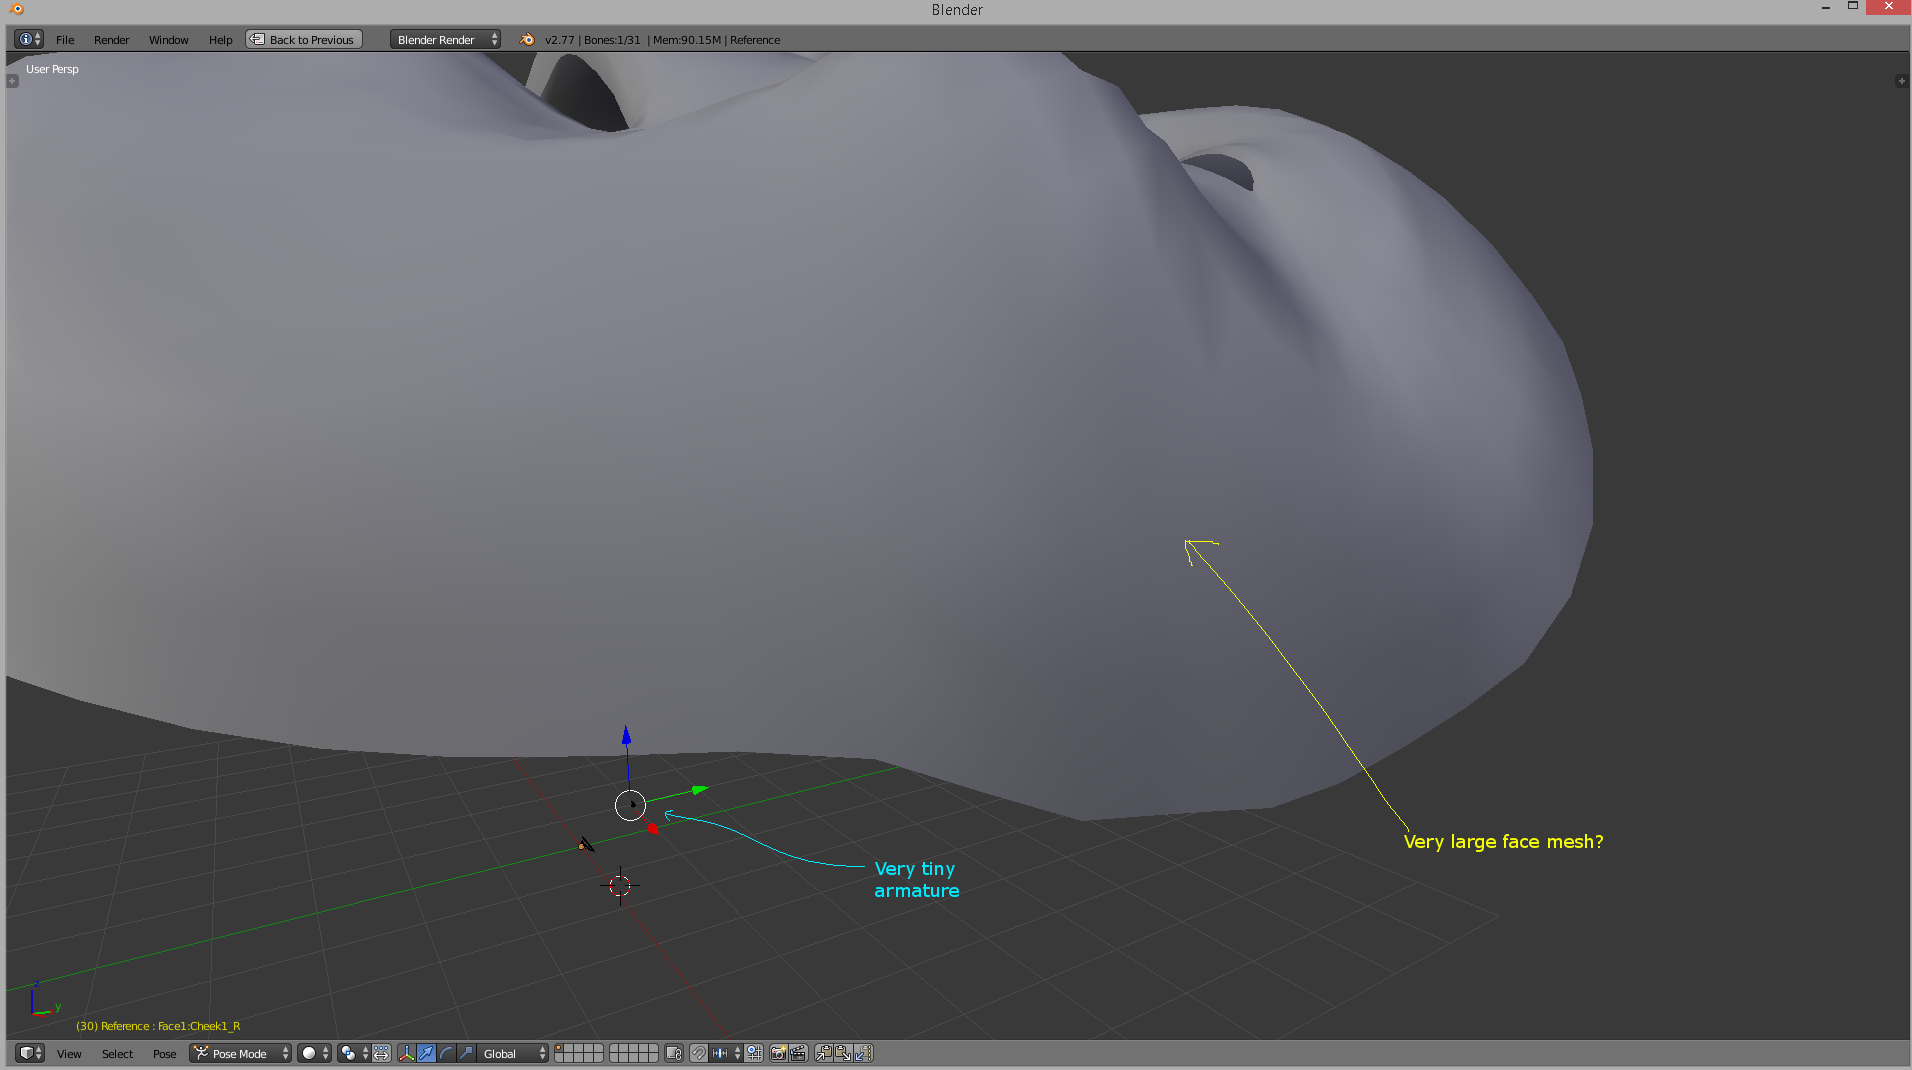 Blender not playing nice with Brekel  Can't import any  FBX